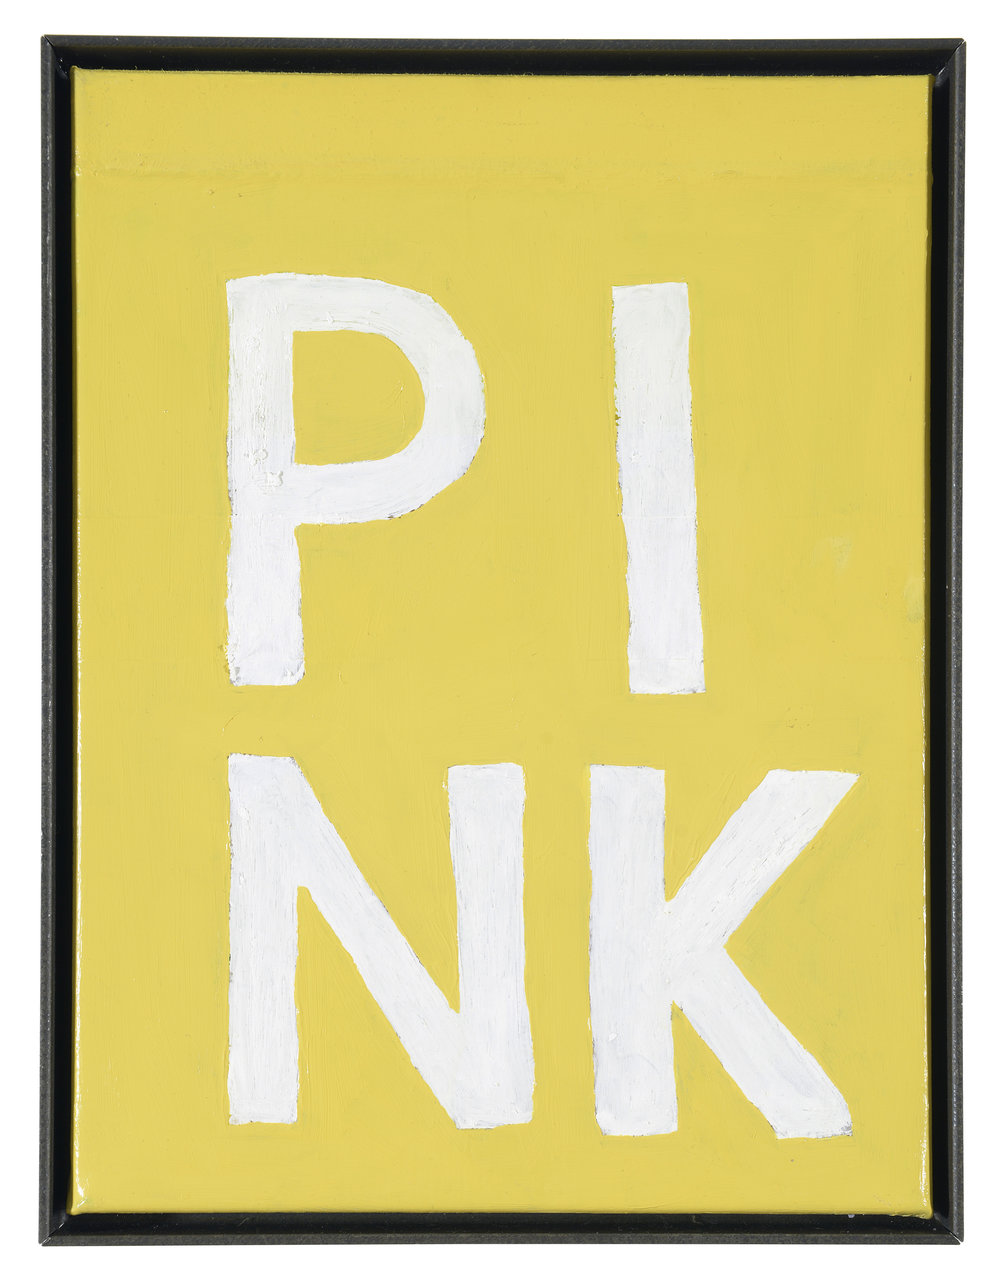 ART N MORE (Paul Bowler & Georg Weißbach), PINK (Four-letter words), 2016, Oil on canvas in artist's frame, 40 x 30 cm